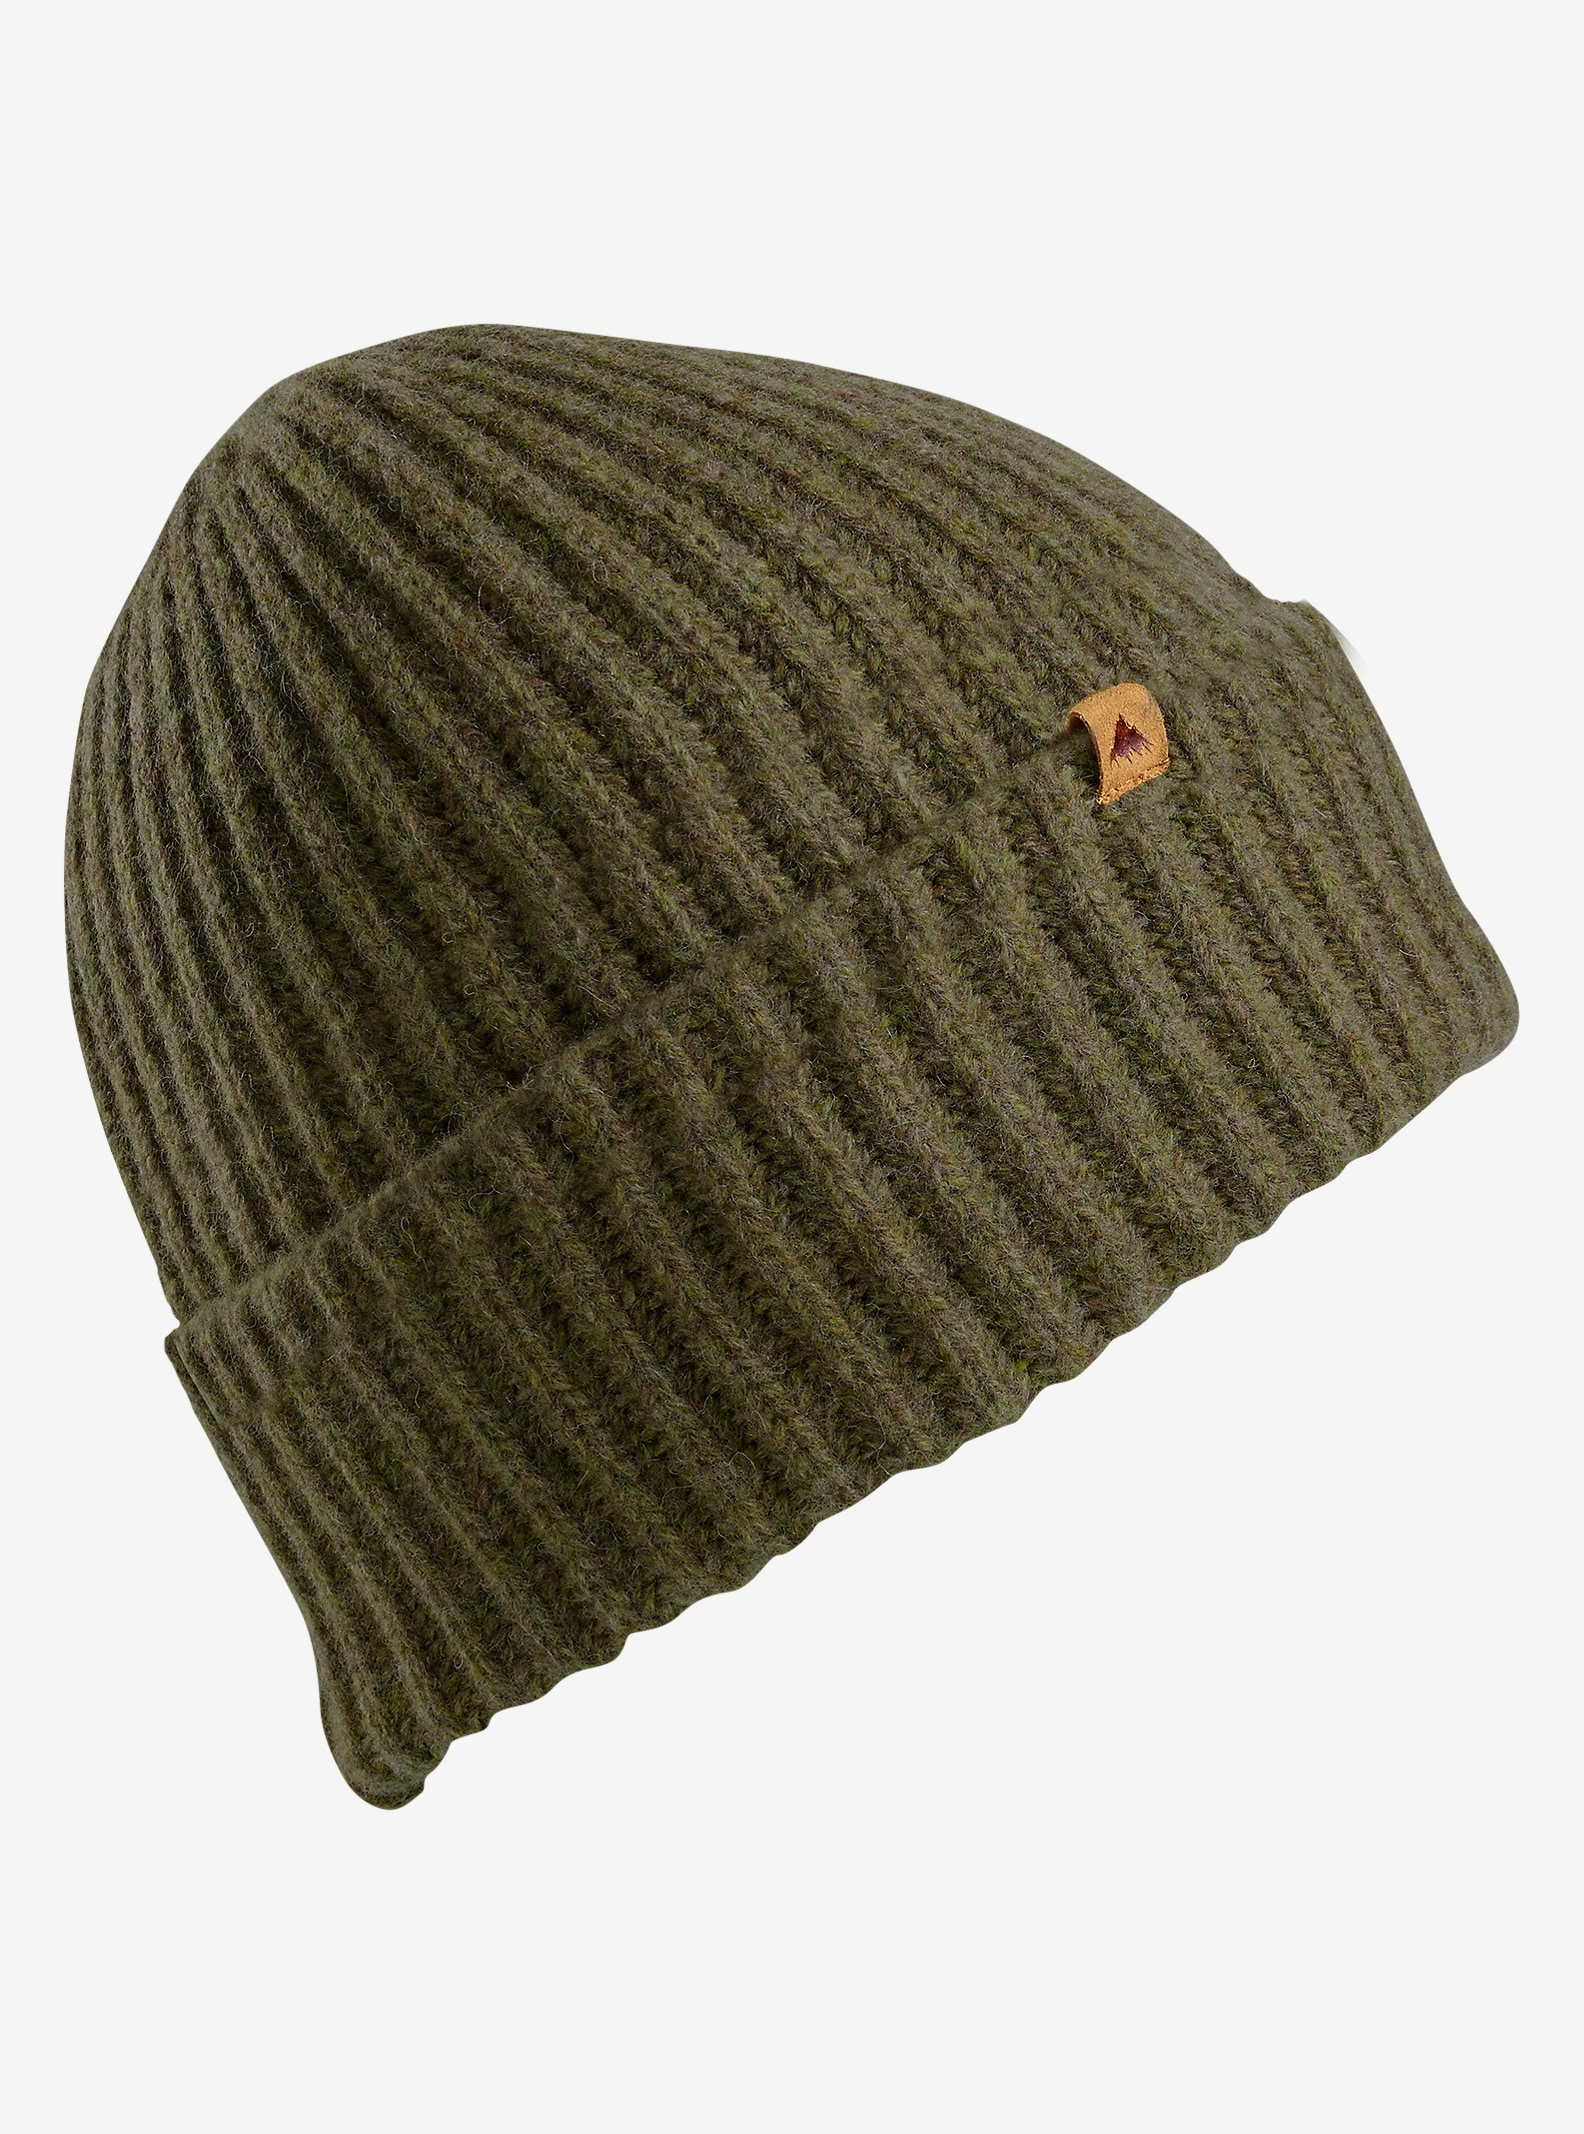 Burton Branch Beanie shown in Keef